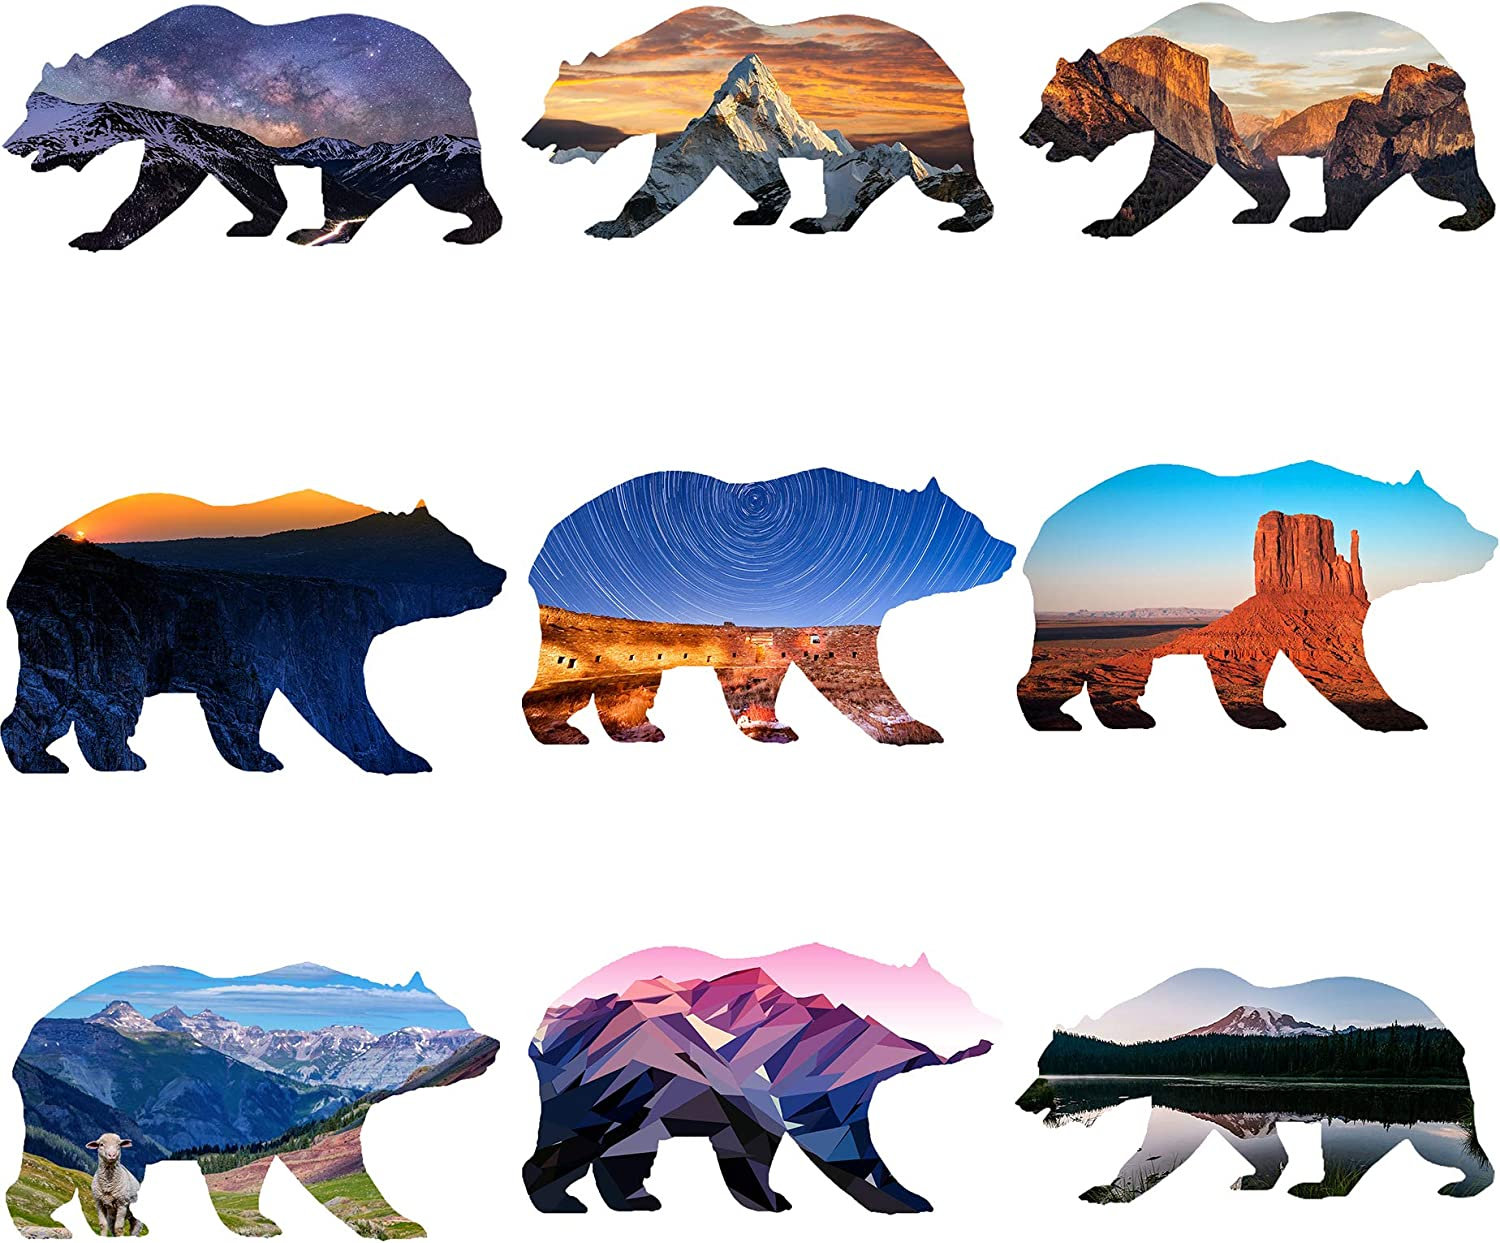 "GTOTd Stickers Outdoor Wilderness Bear(9PCS). Vinyl Decal 4x4'' Sticker - Laptop, Phone,Bumpers,Waterbottle Stickers Pack (4"" Wide - A Beautiful Unique Design)"